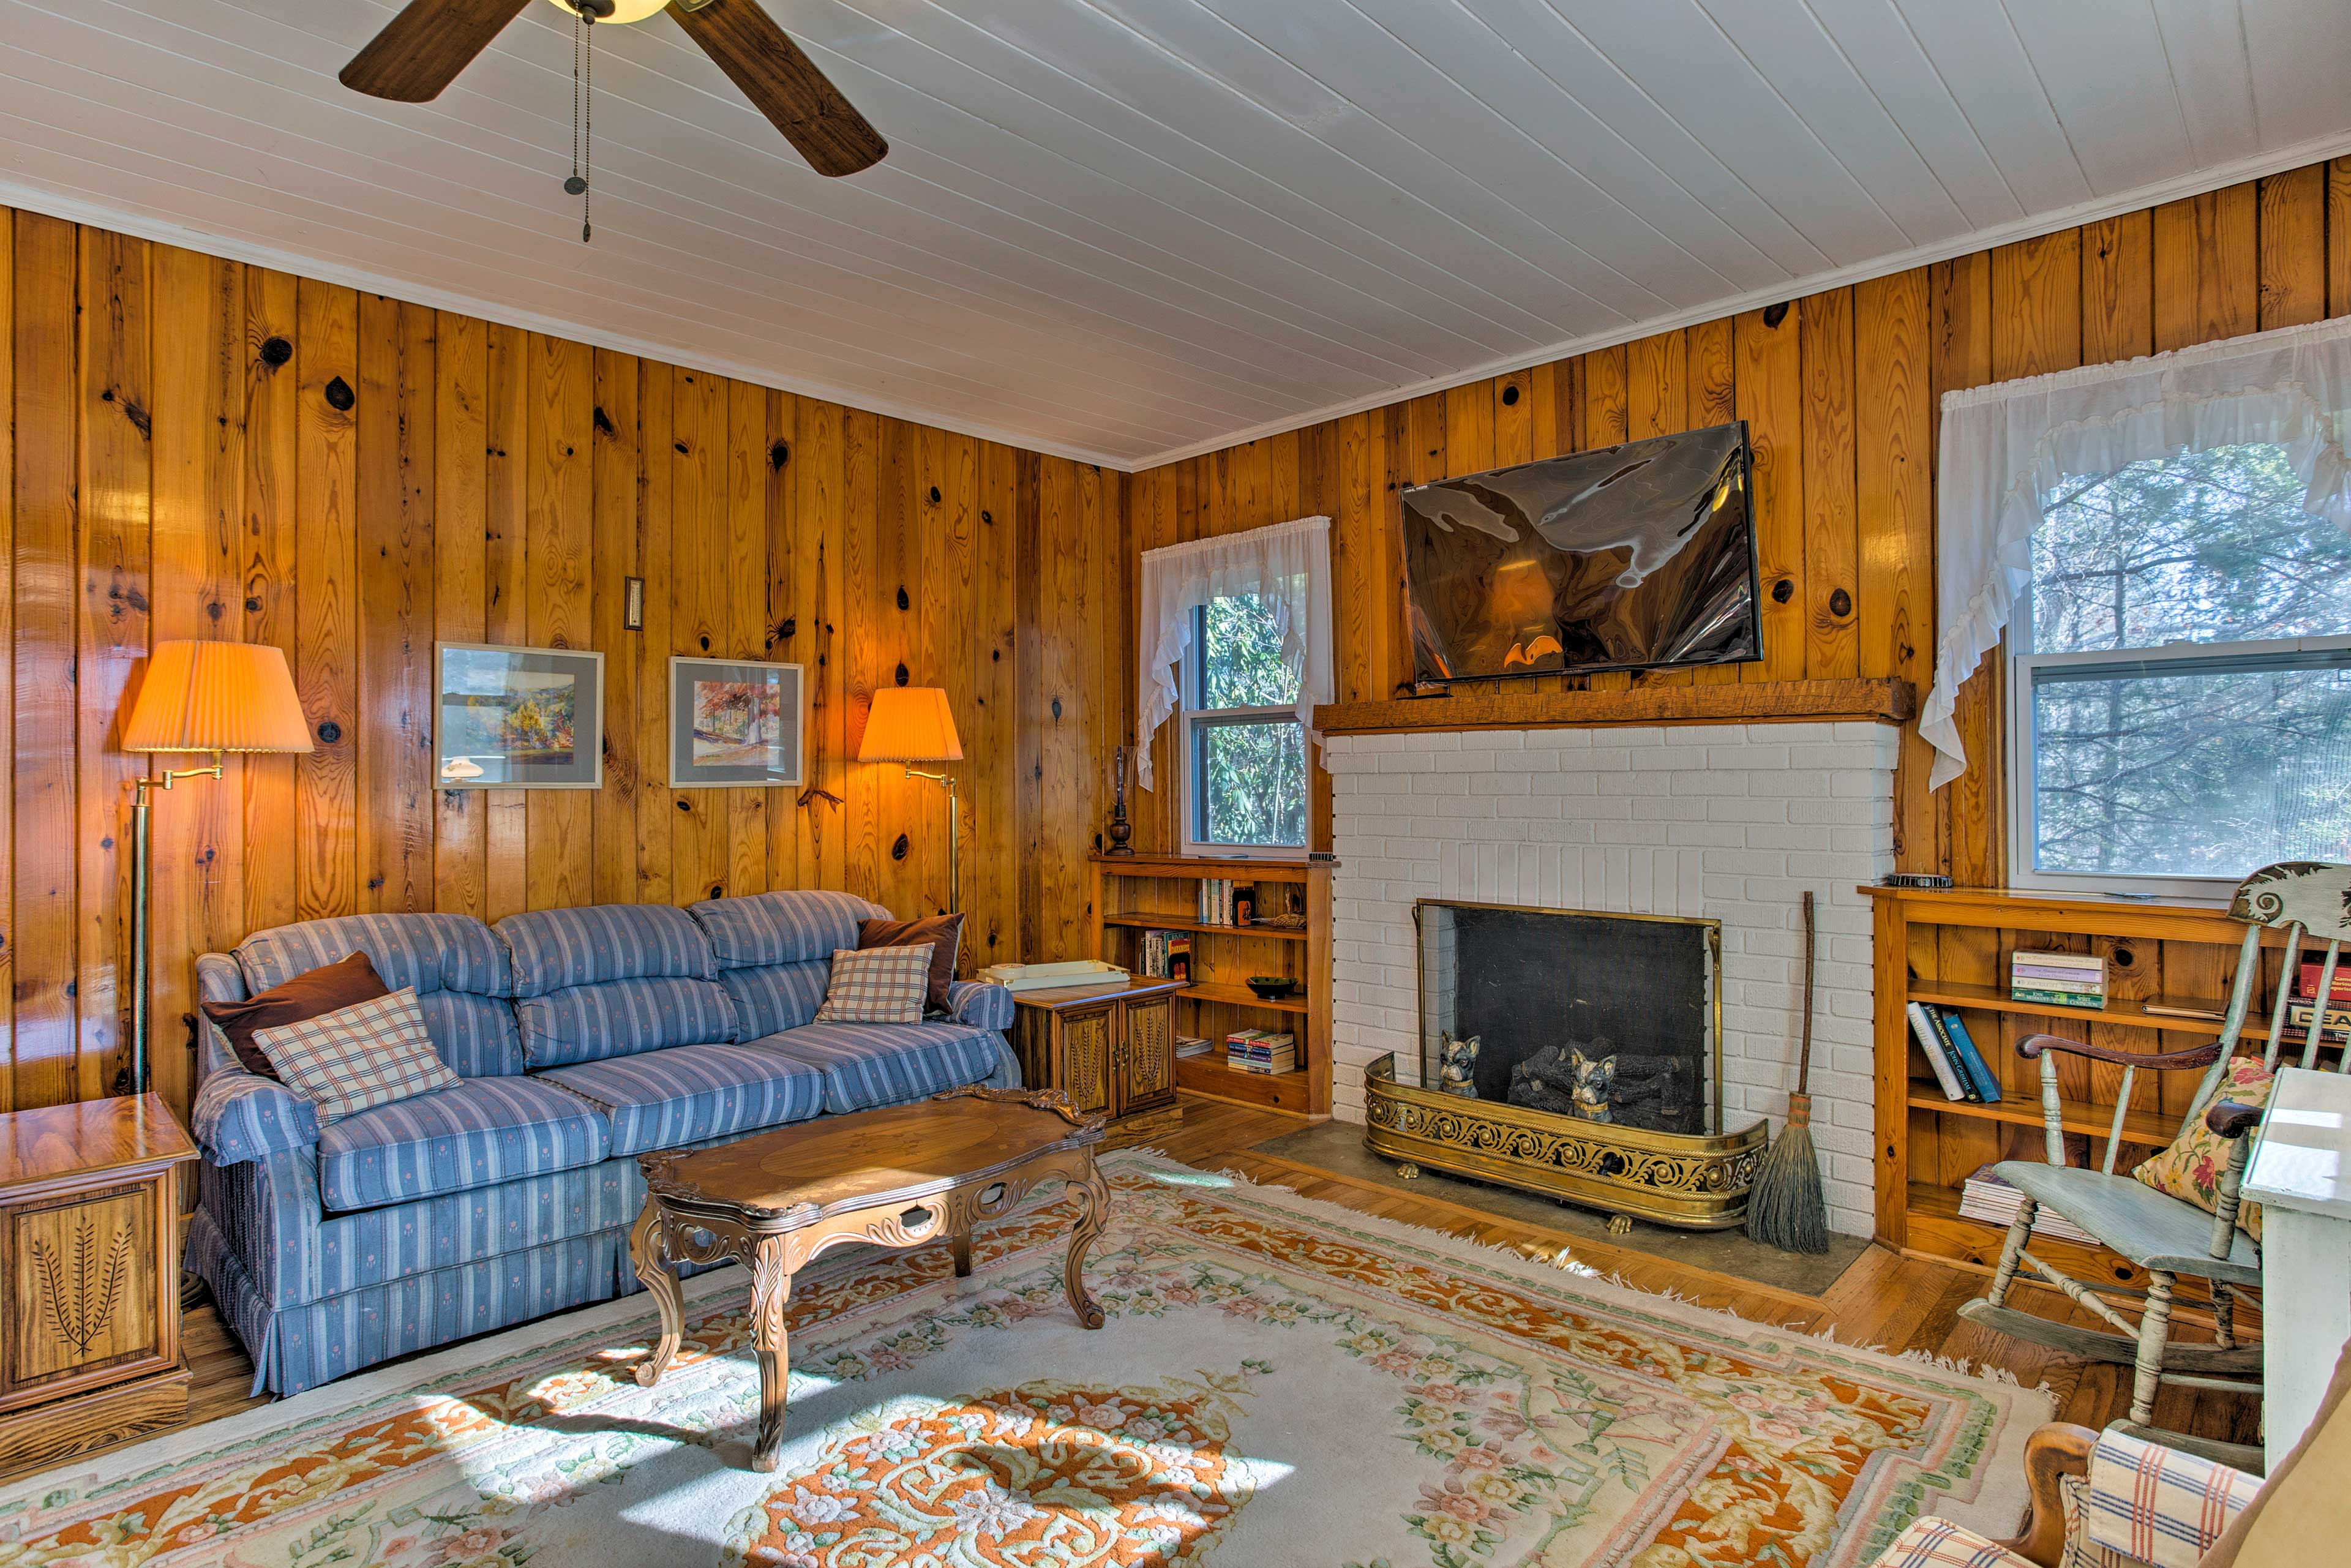 The living room is made even cozier with the addition of a gas fireplace.